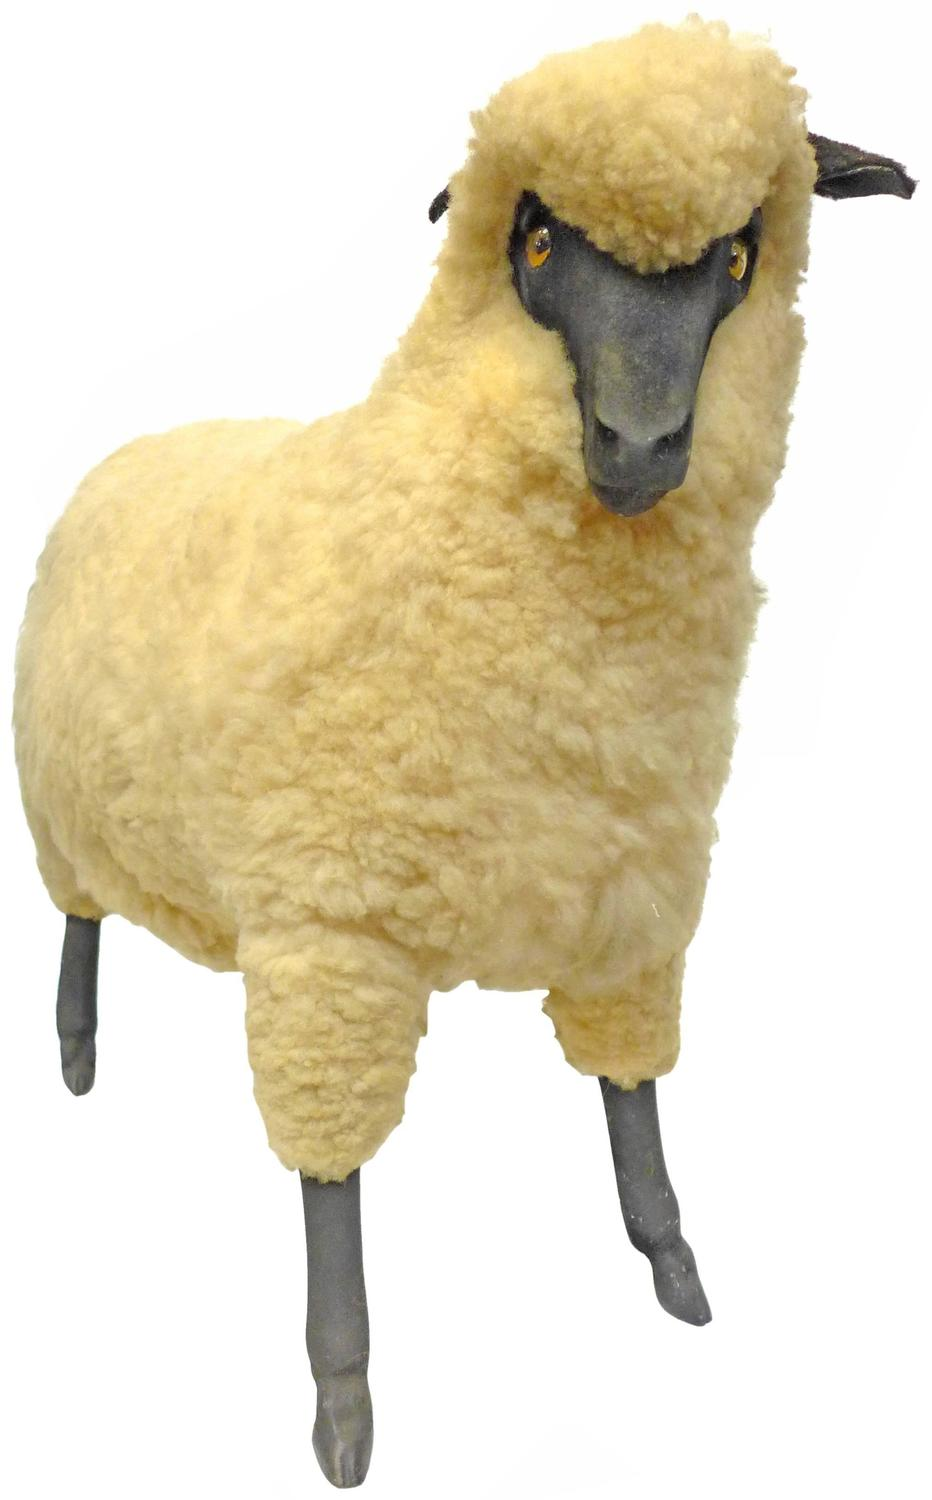 Vintage Wool and Resin Sheep in the Style of Lalanne at ...